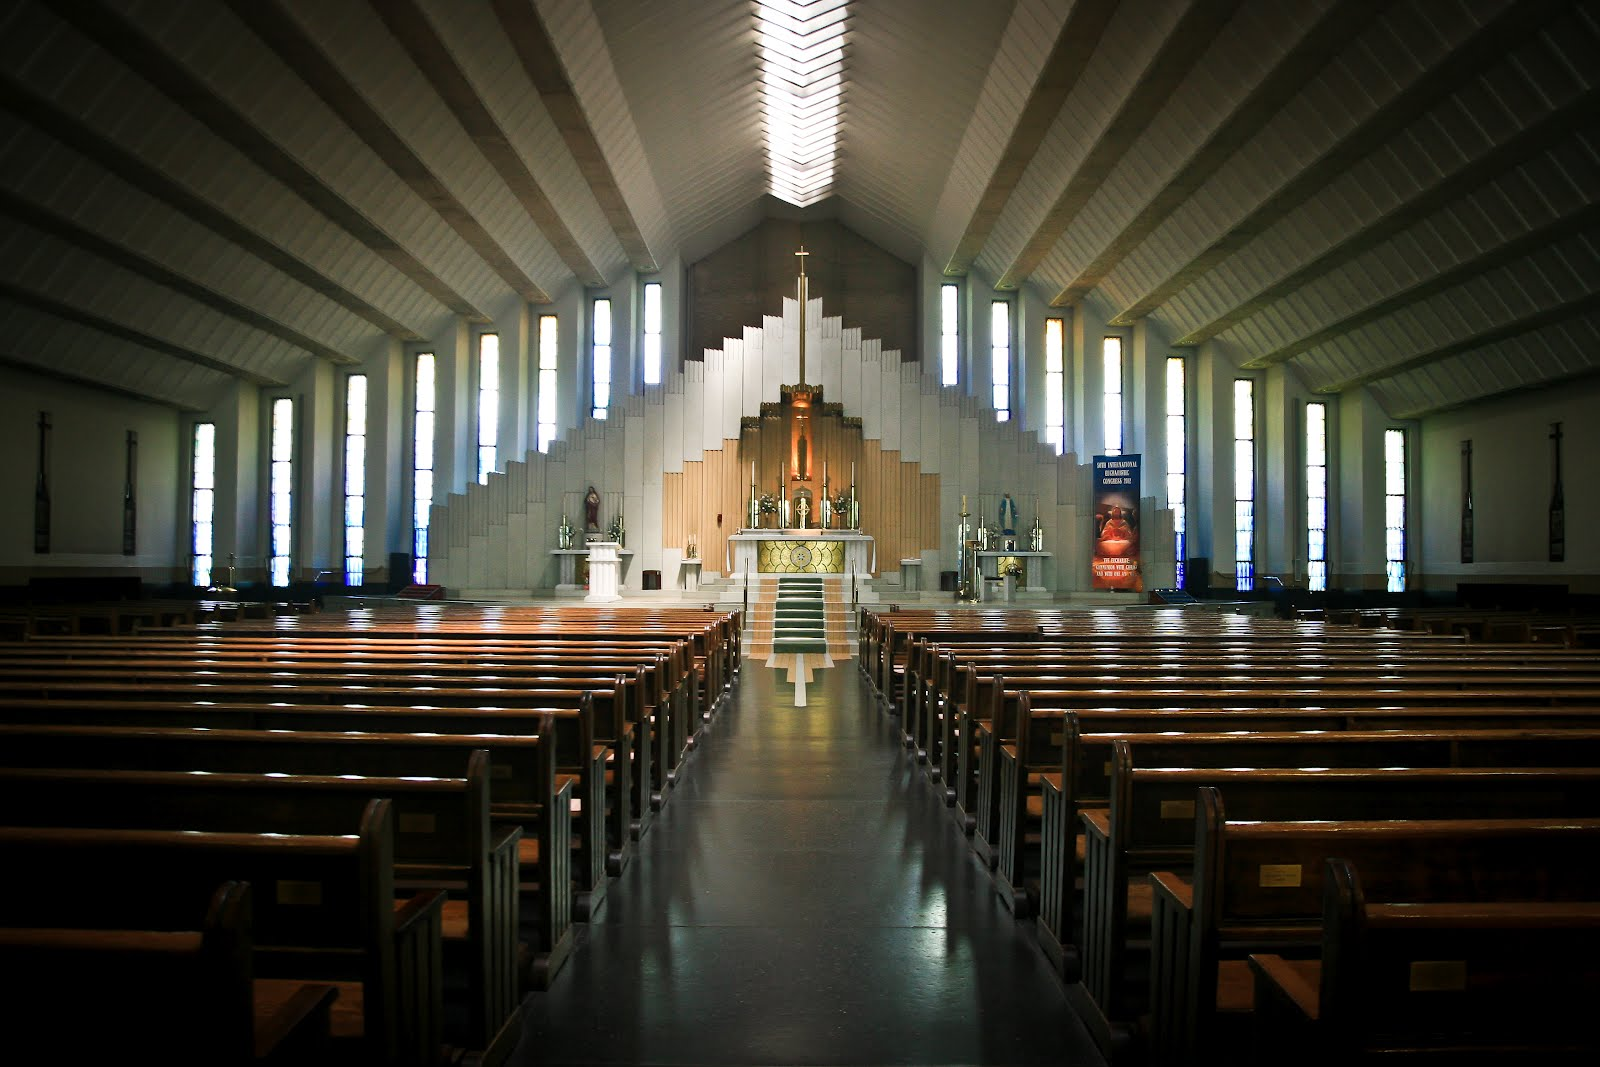 Inside Church Background